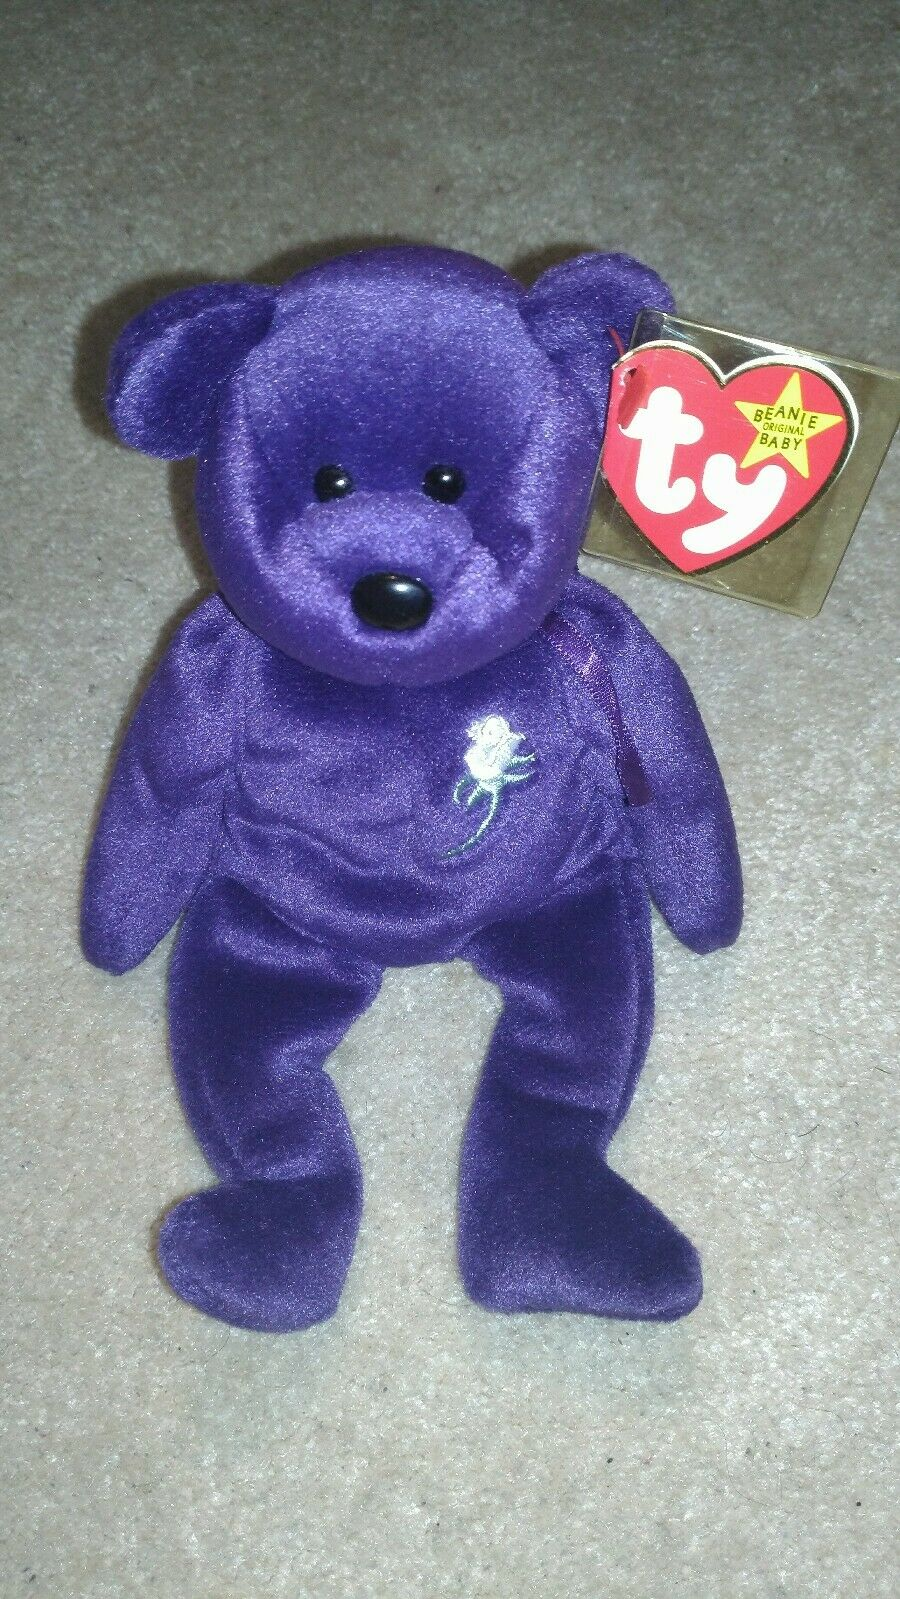 Princess Diana TY Beanie Baby Baby Baby Babie 1997 2nd Second Edition flawless condition 22528e